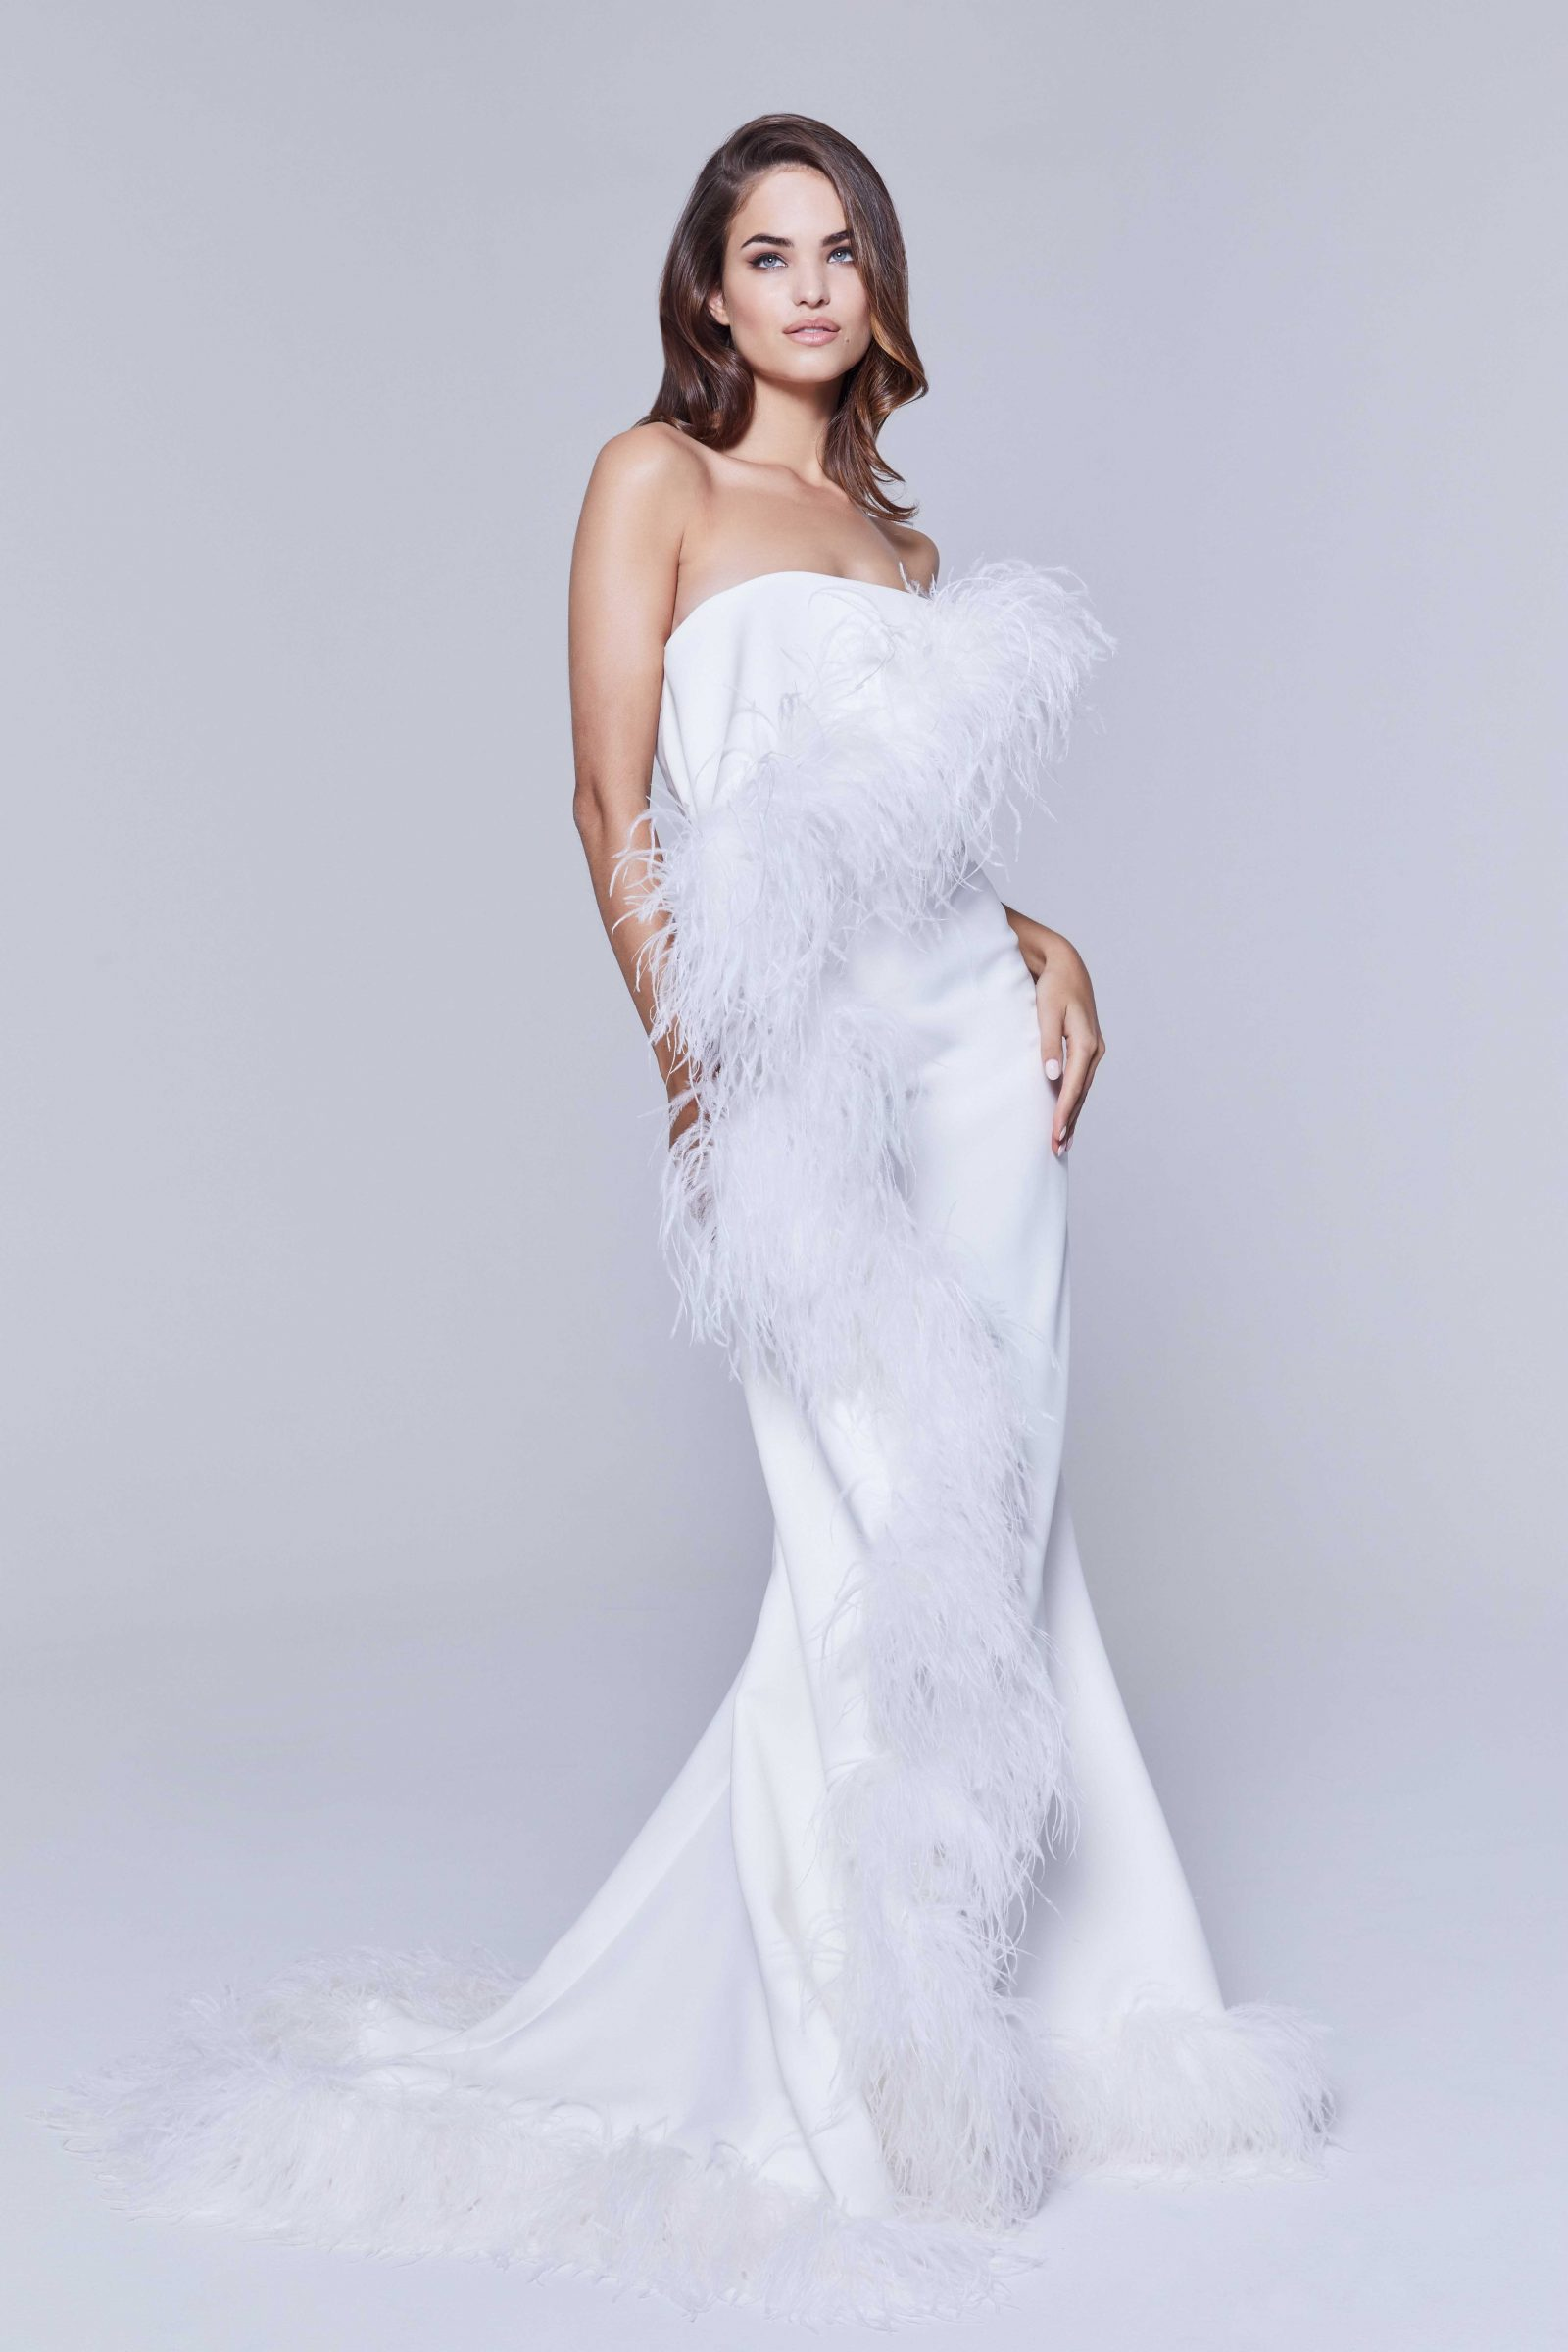 White bridal gown with white feathers